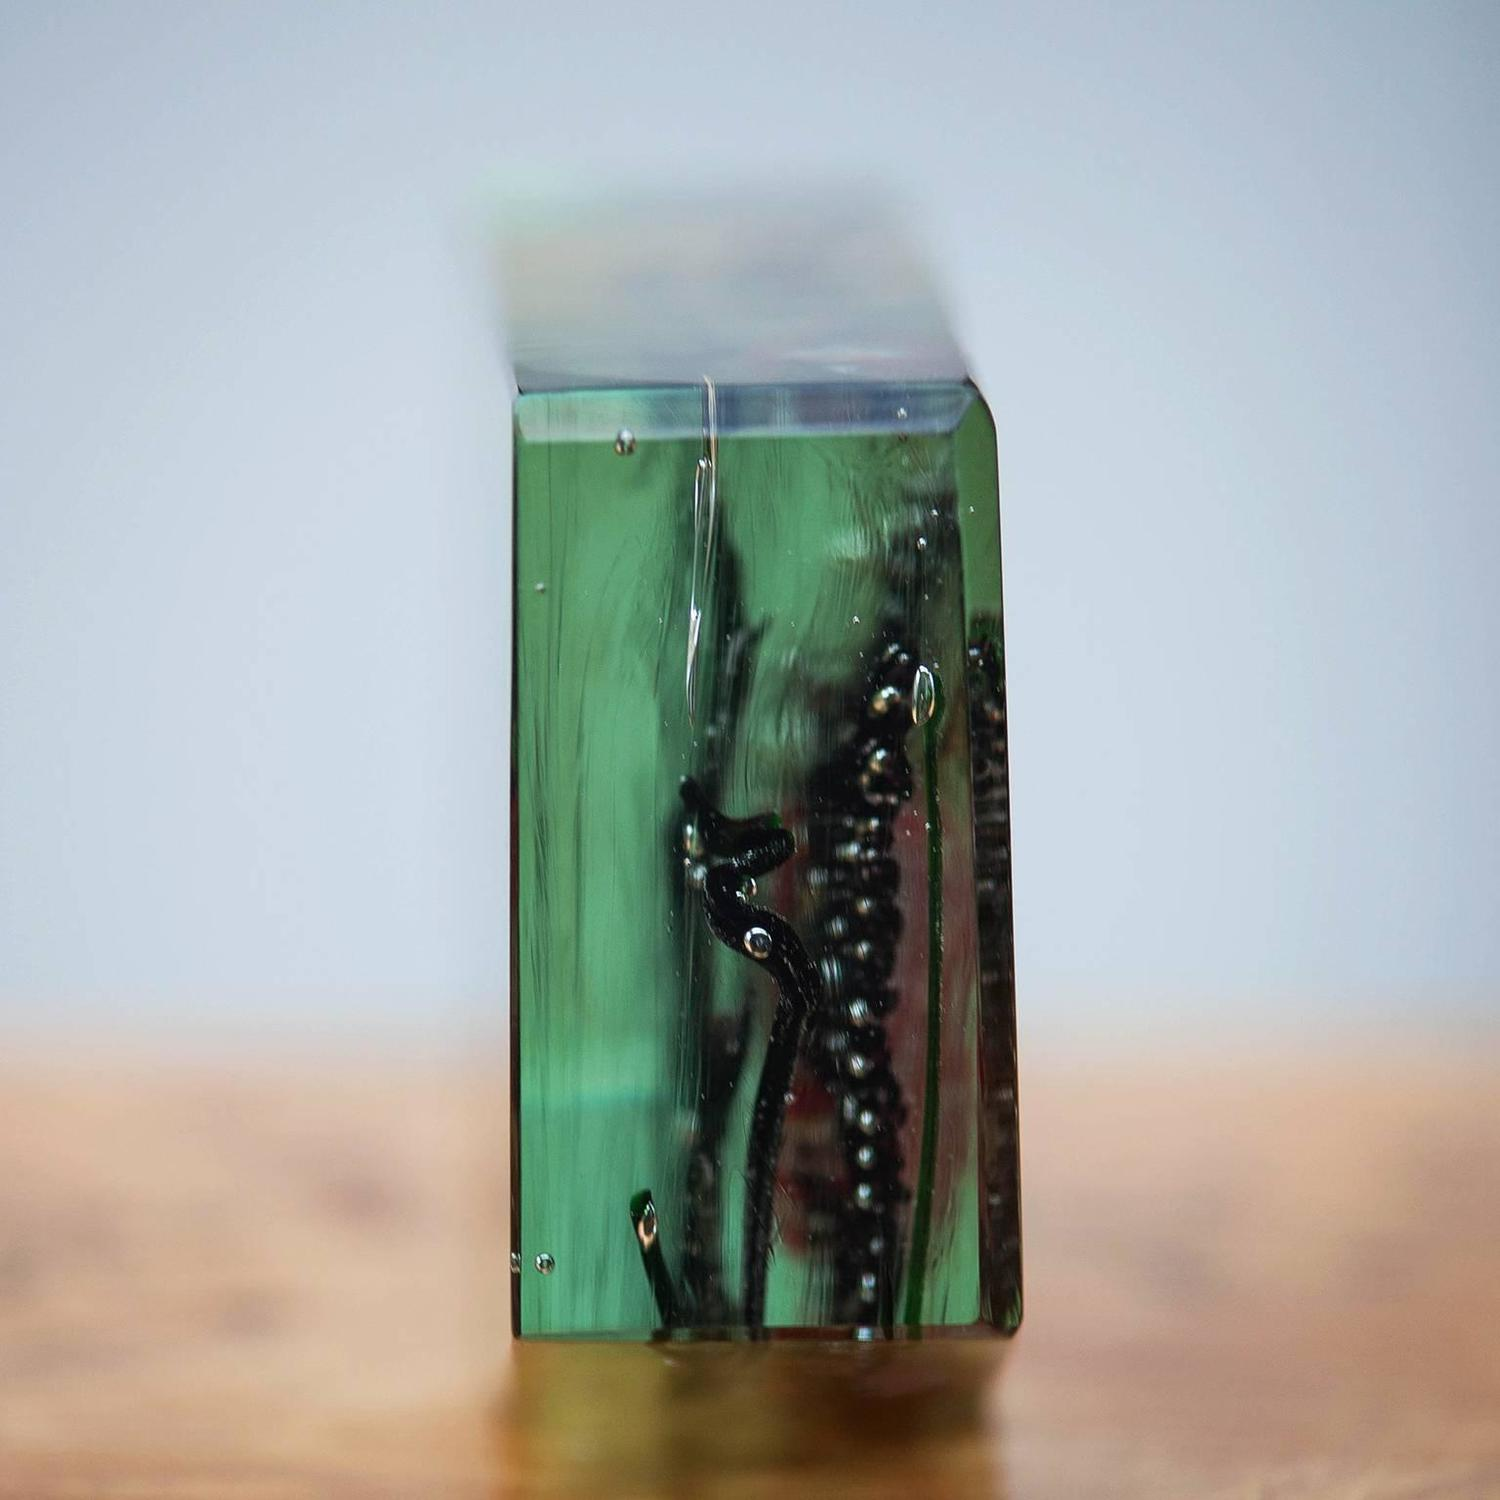 Cenedese Murano Glass Aquarium Object For Sale at 1stdibs